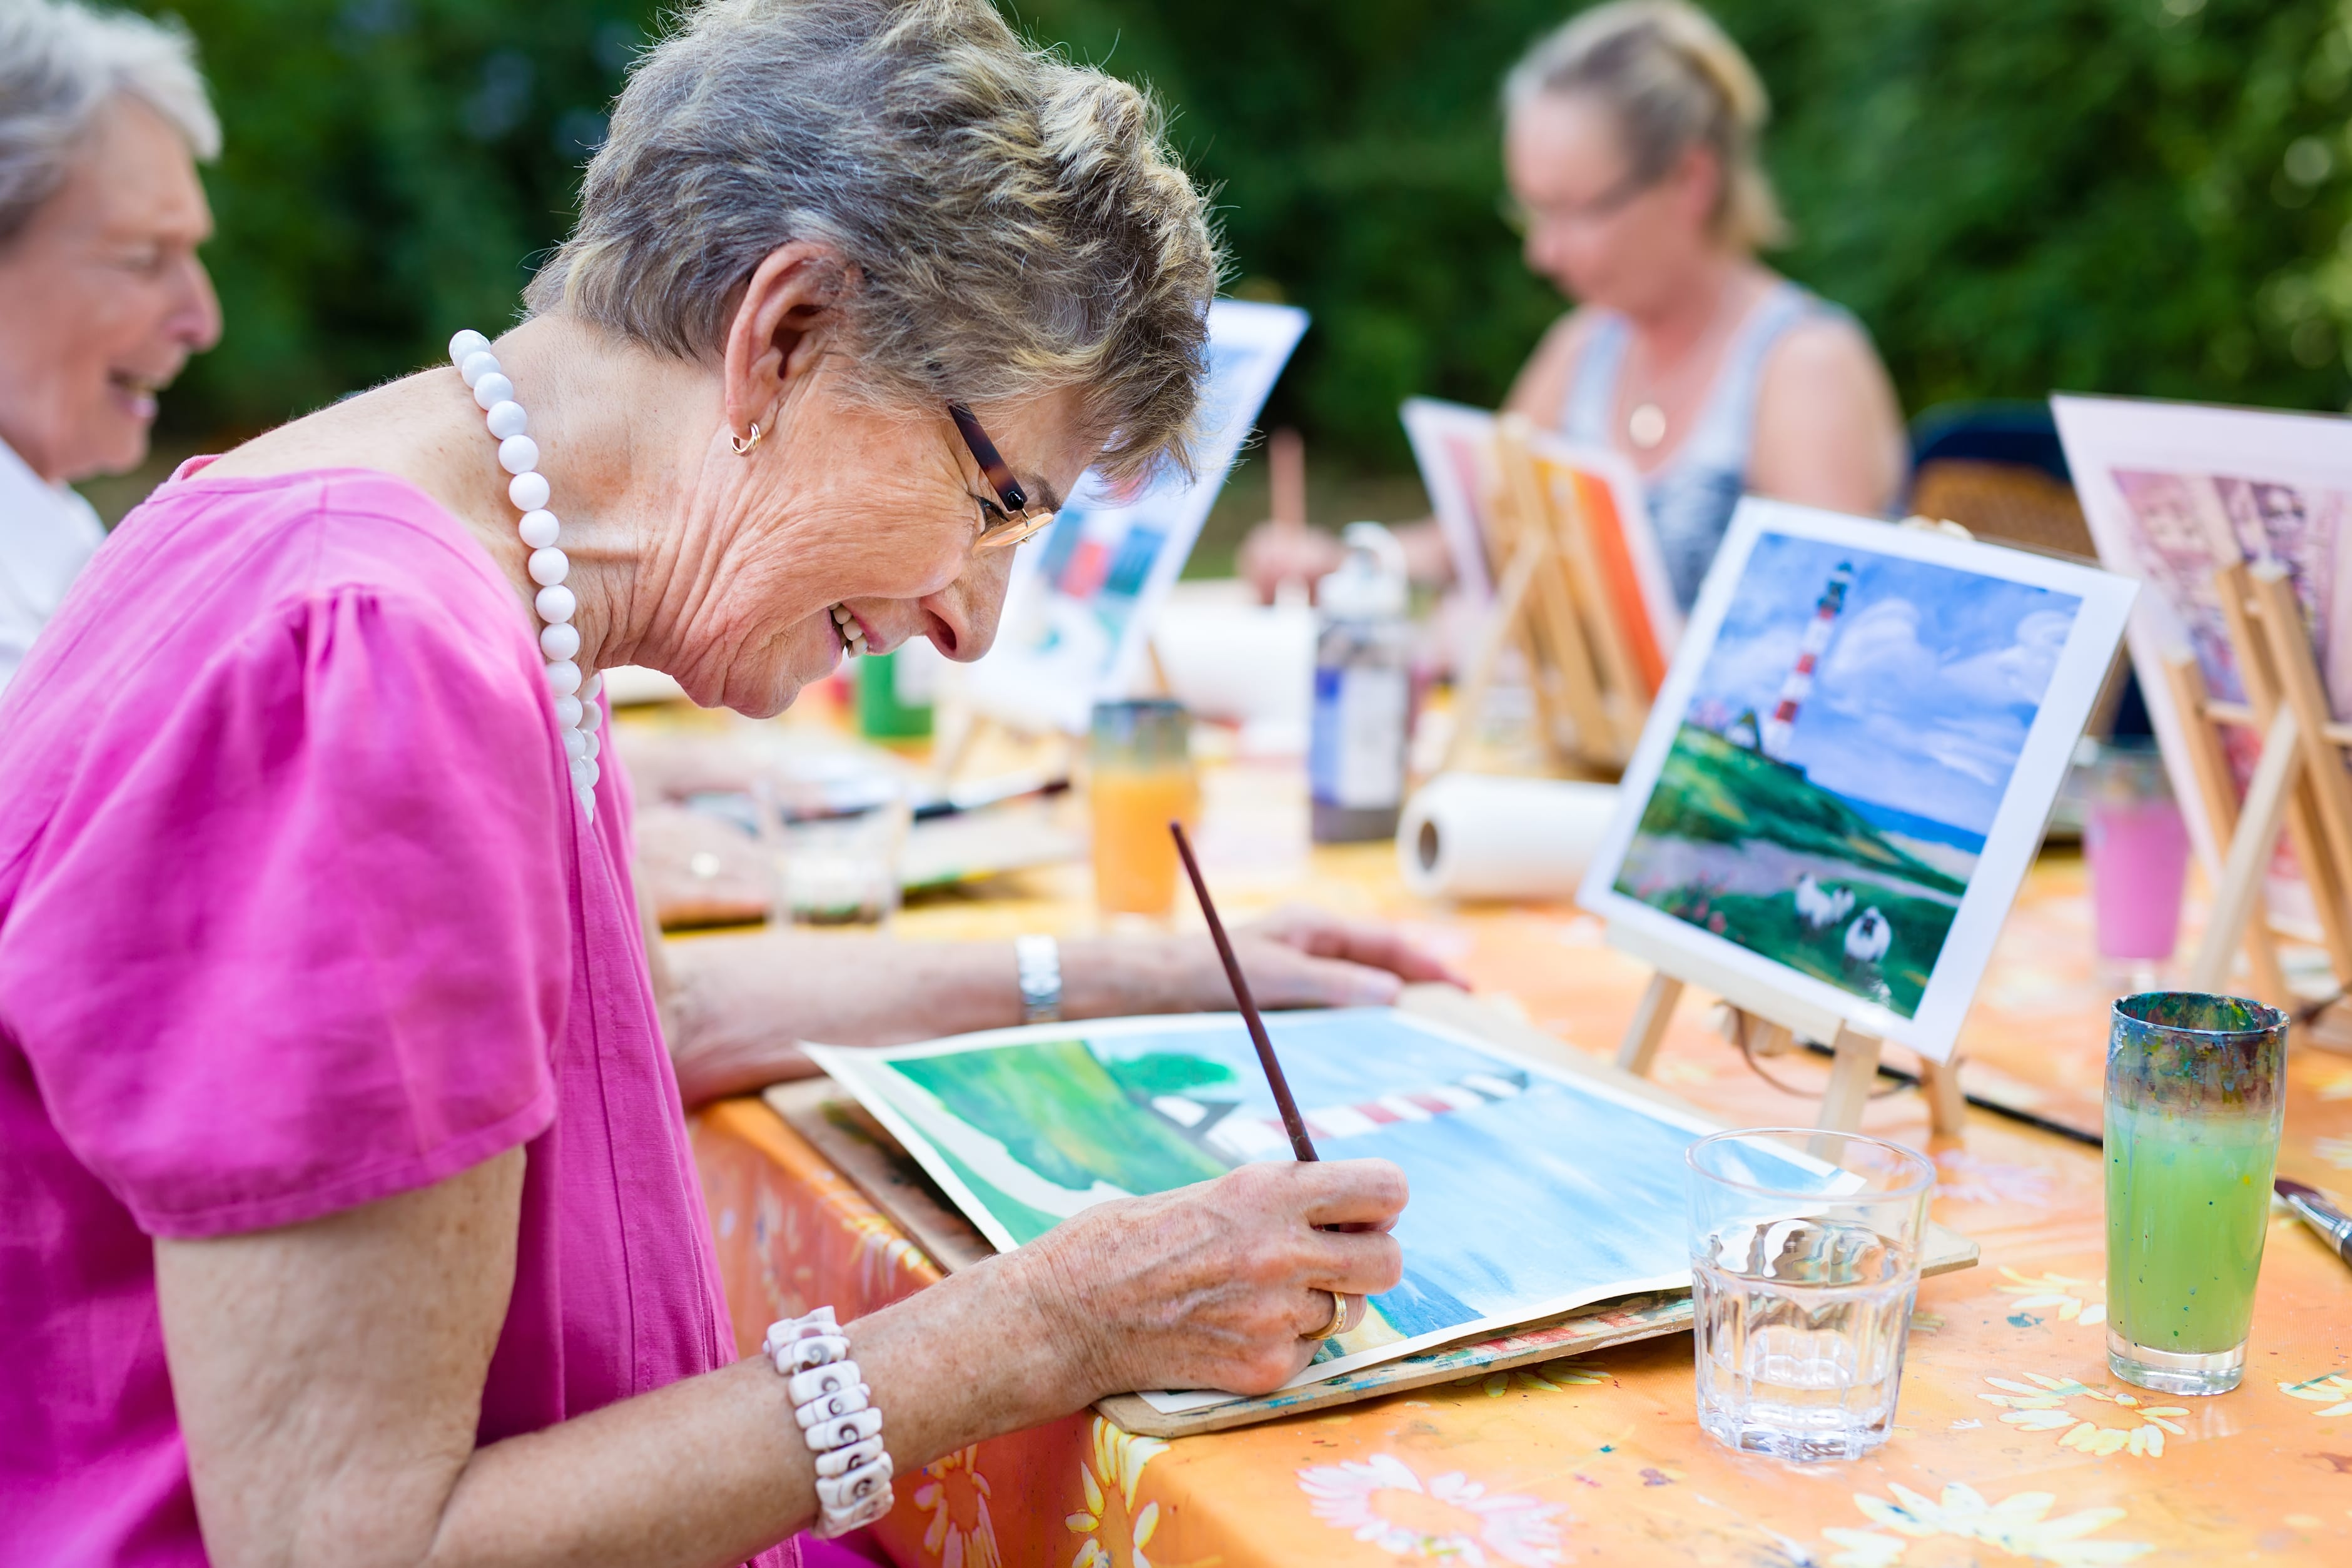 7 Memory Care Activities to Engage Persons with Dementia